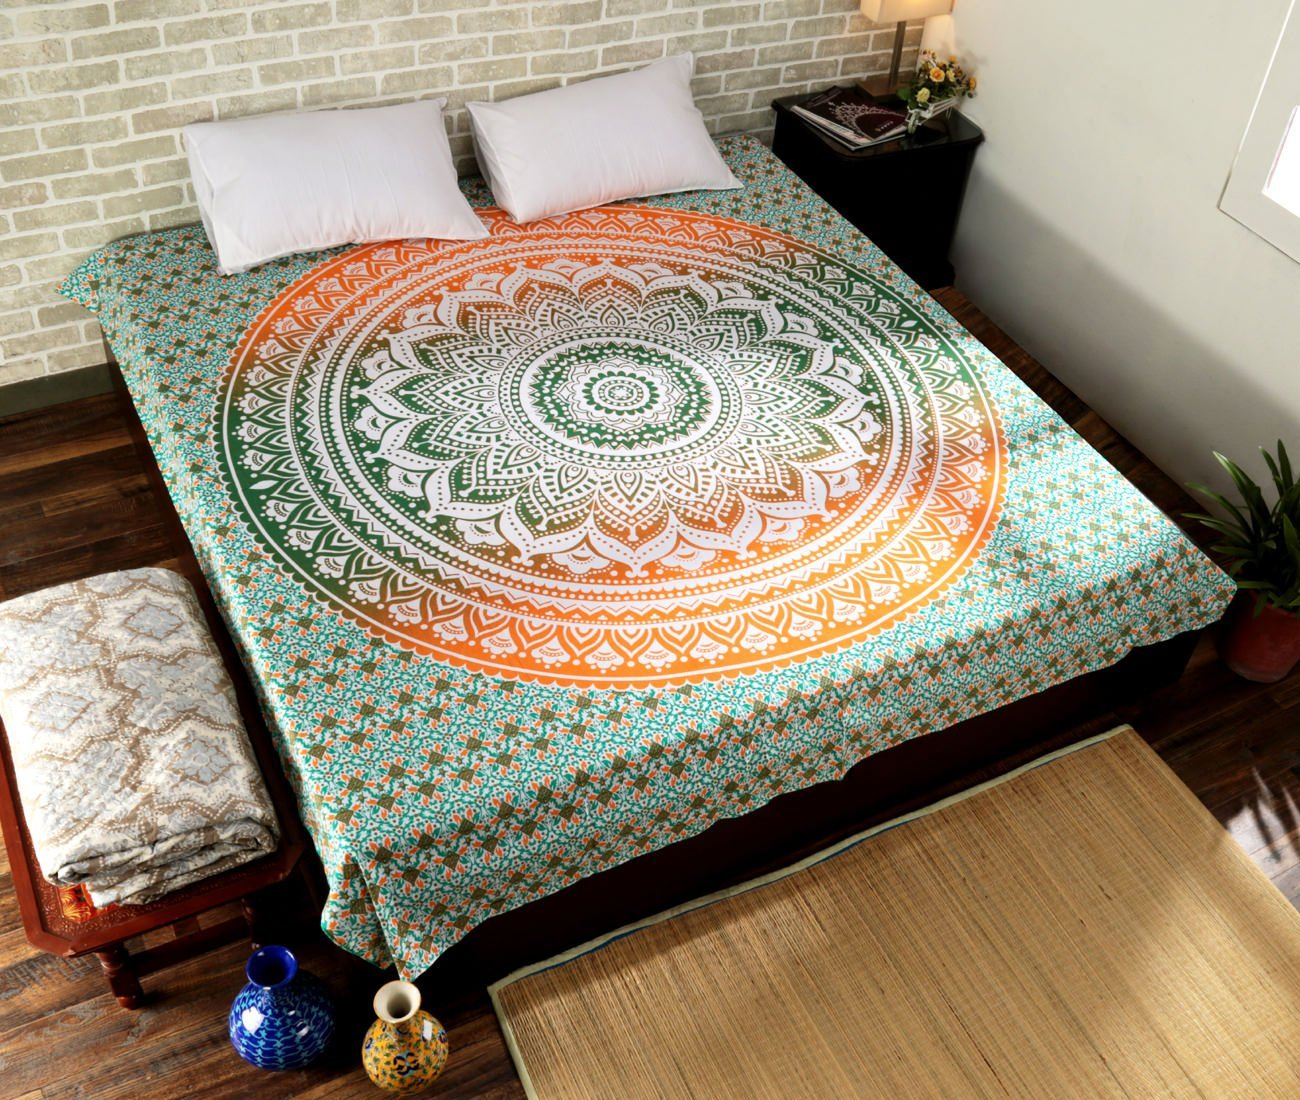 HANDICRAFTOFPINKCITY Ombre Mandala Duvet Cover Throw Handmade Reversible Quilt Cover Indian Bedding Doona Blanket Cover With 2pc Pillow Cover